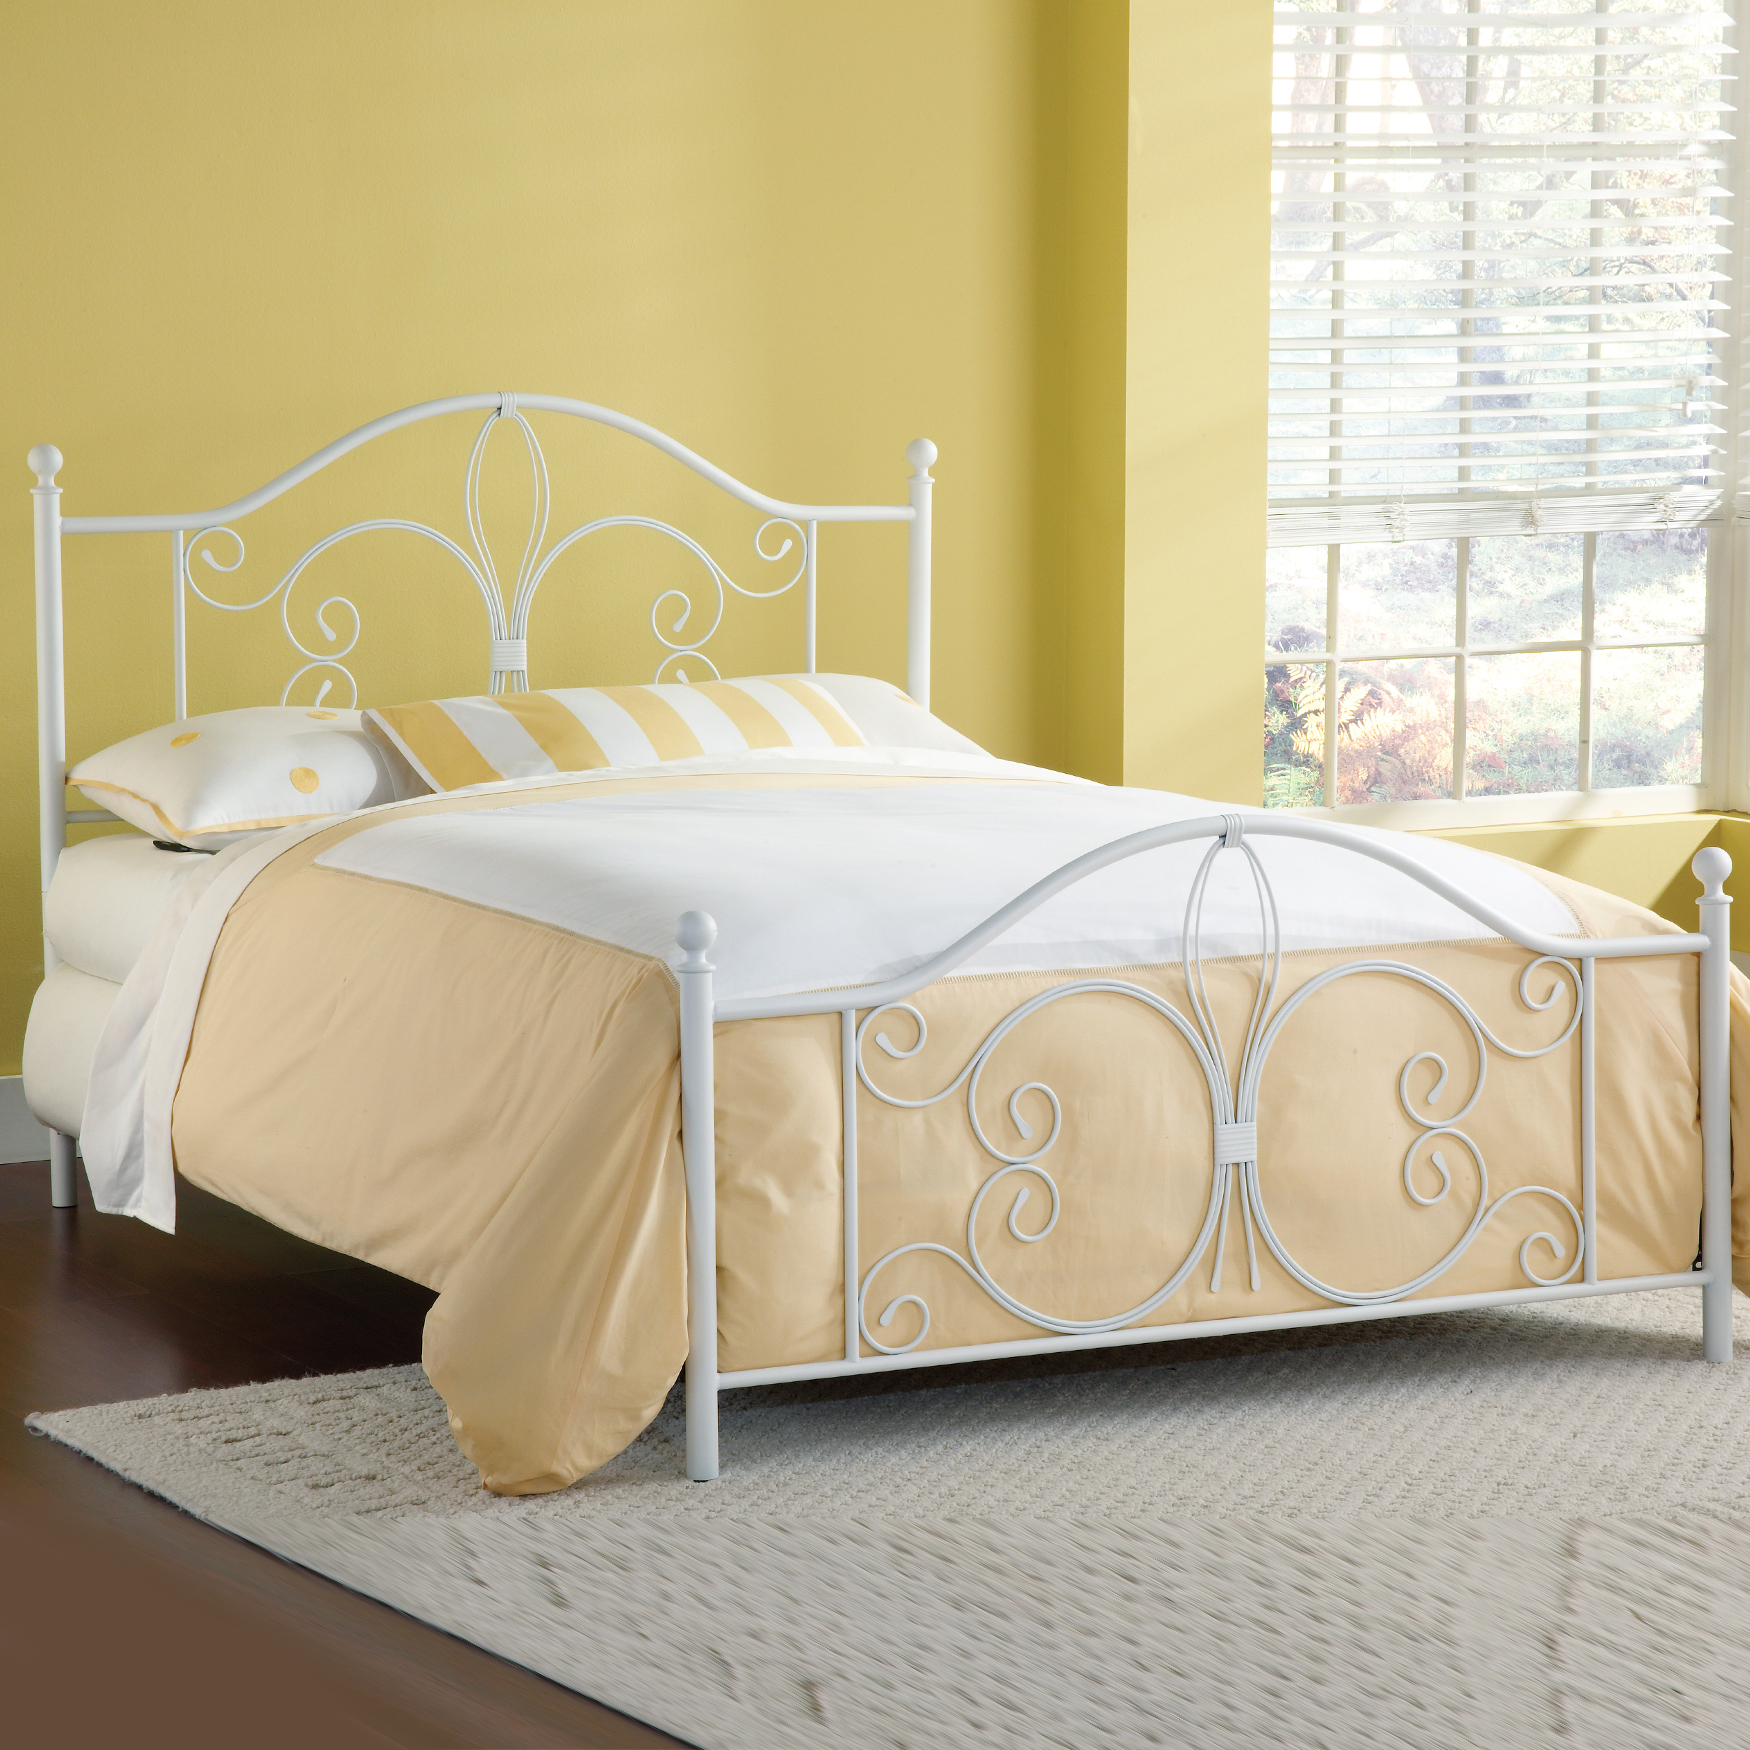 Ruby Bed Set with Rails - King, WHITE